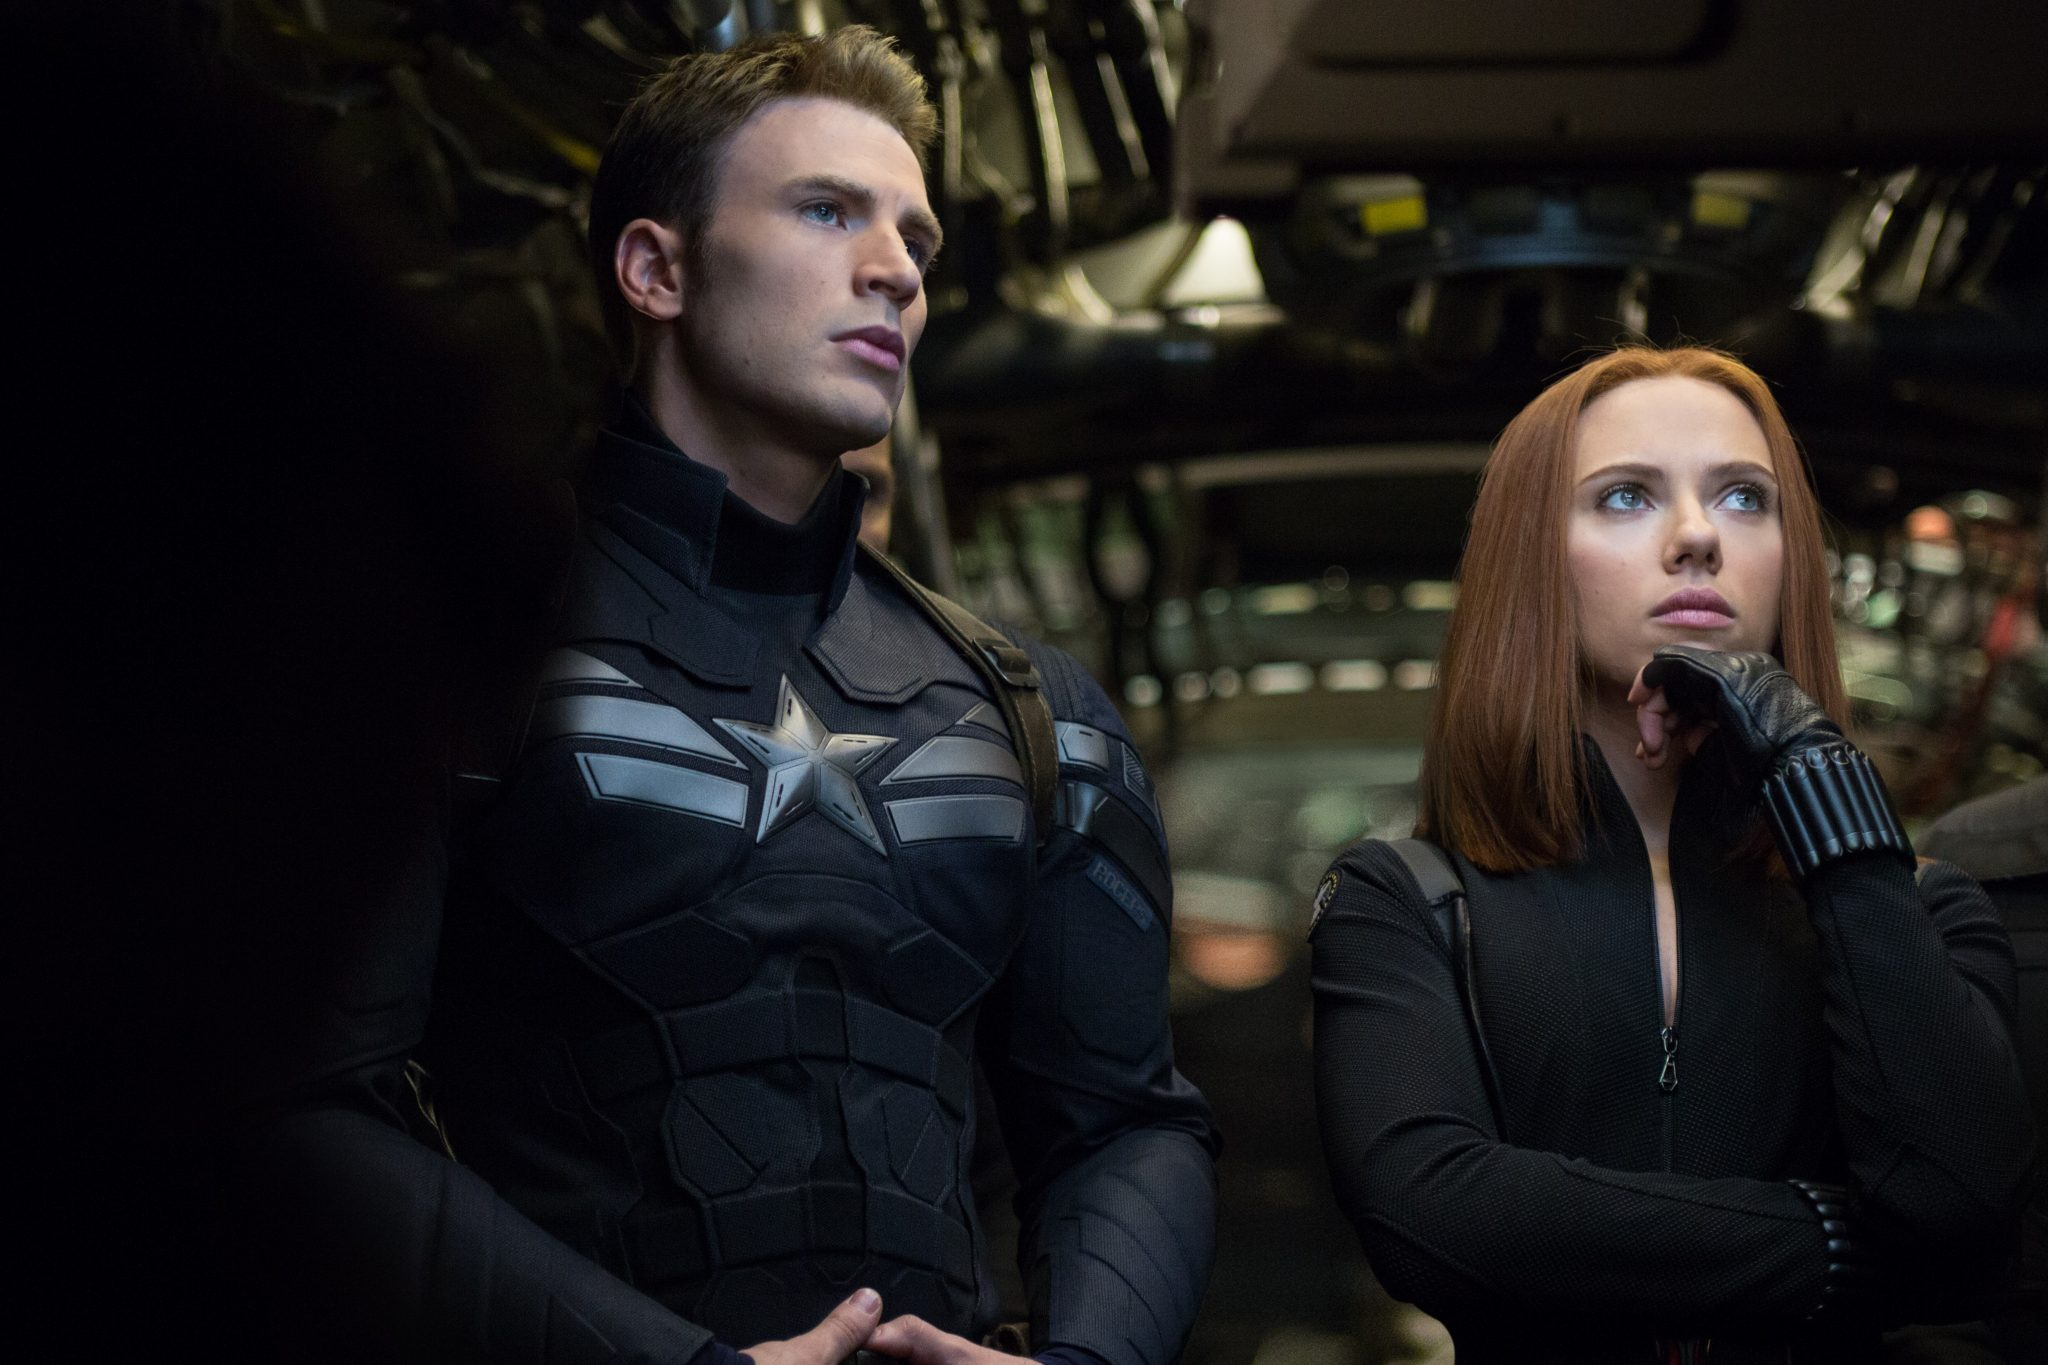 Second Opinion: Why 'Captain America: The Winter Soldier' Isn't a Masterpiece